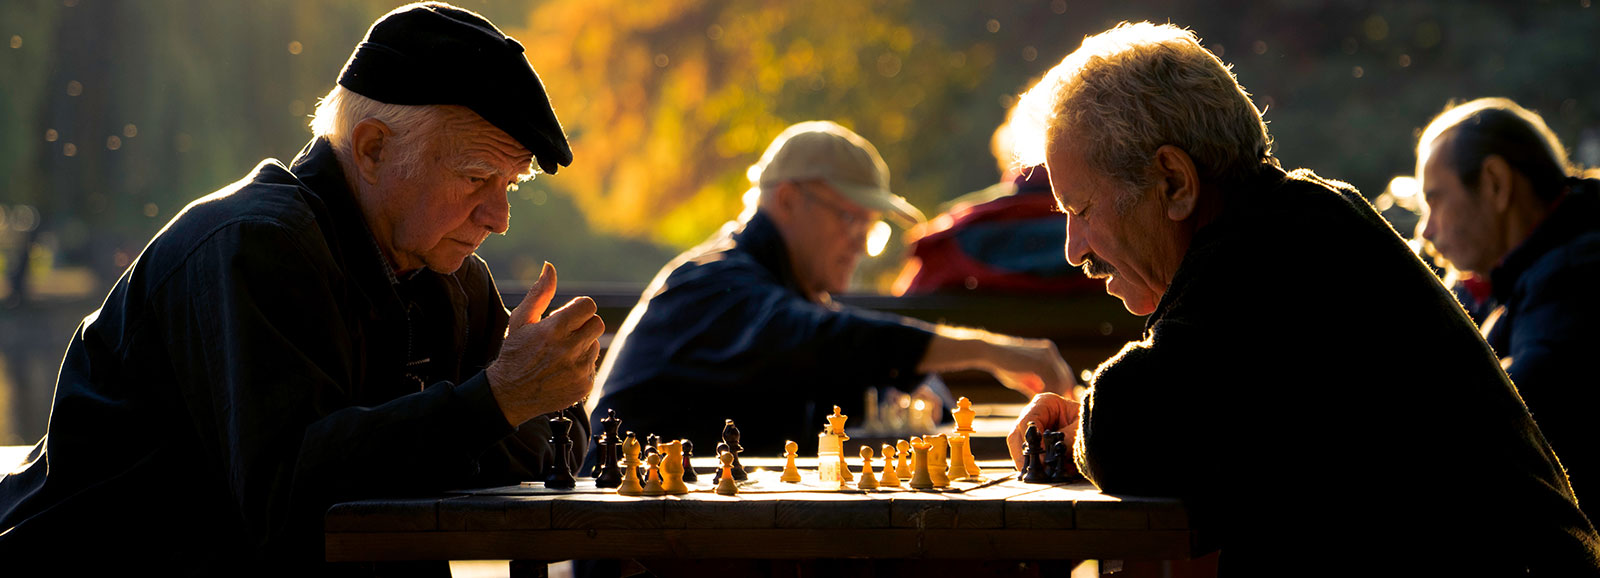 older men playing chess